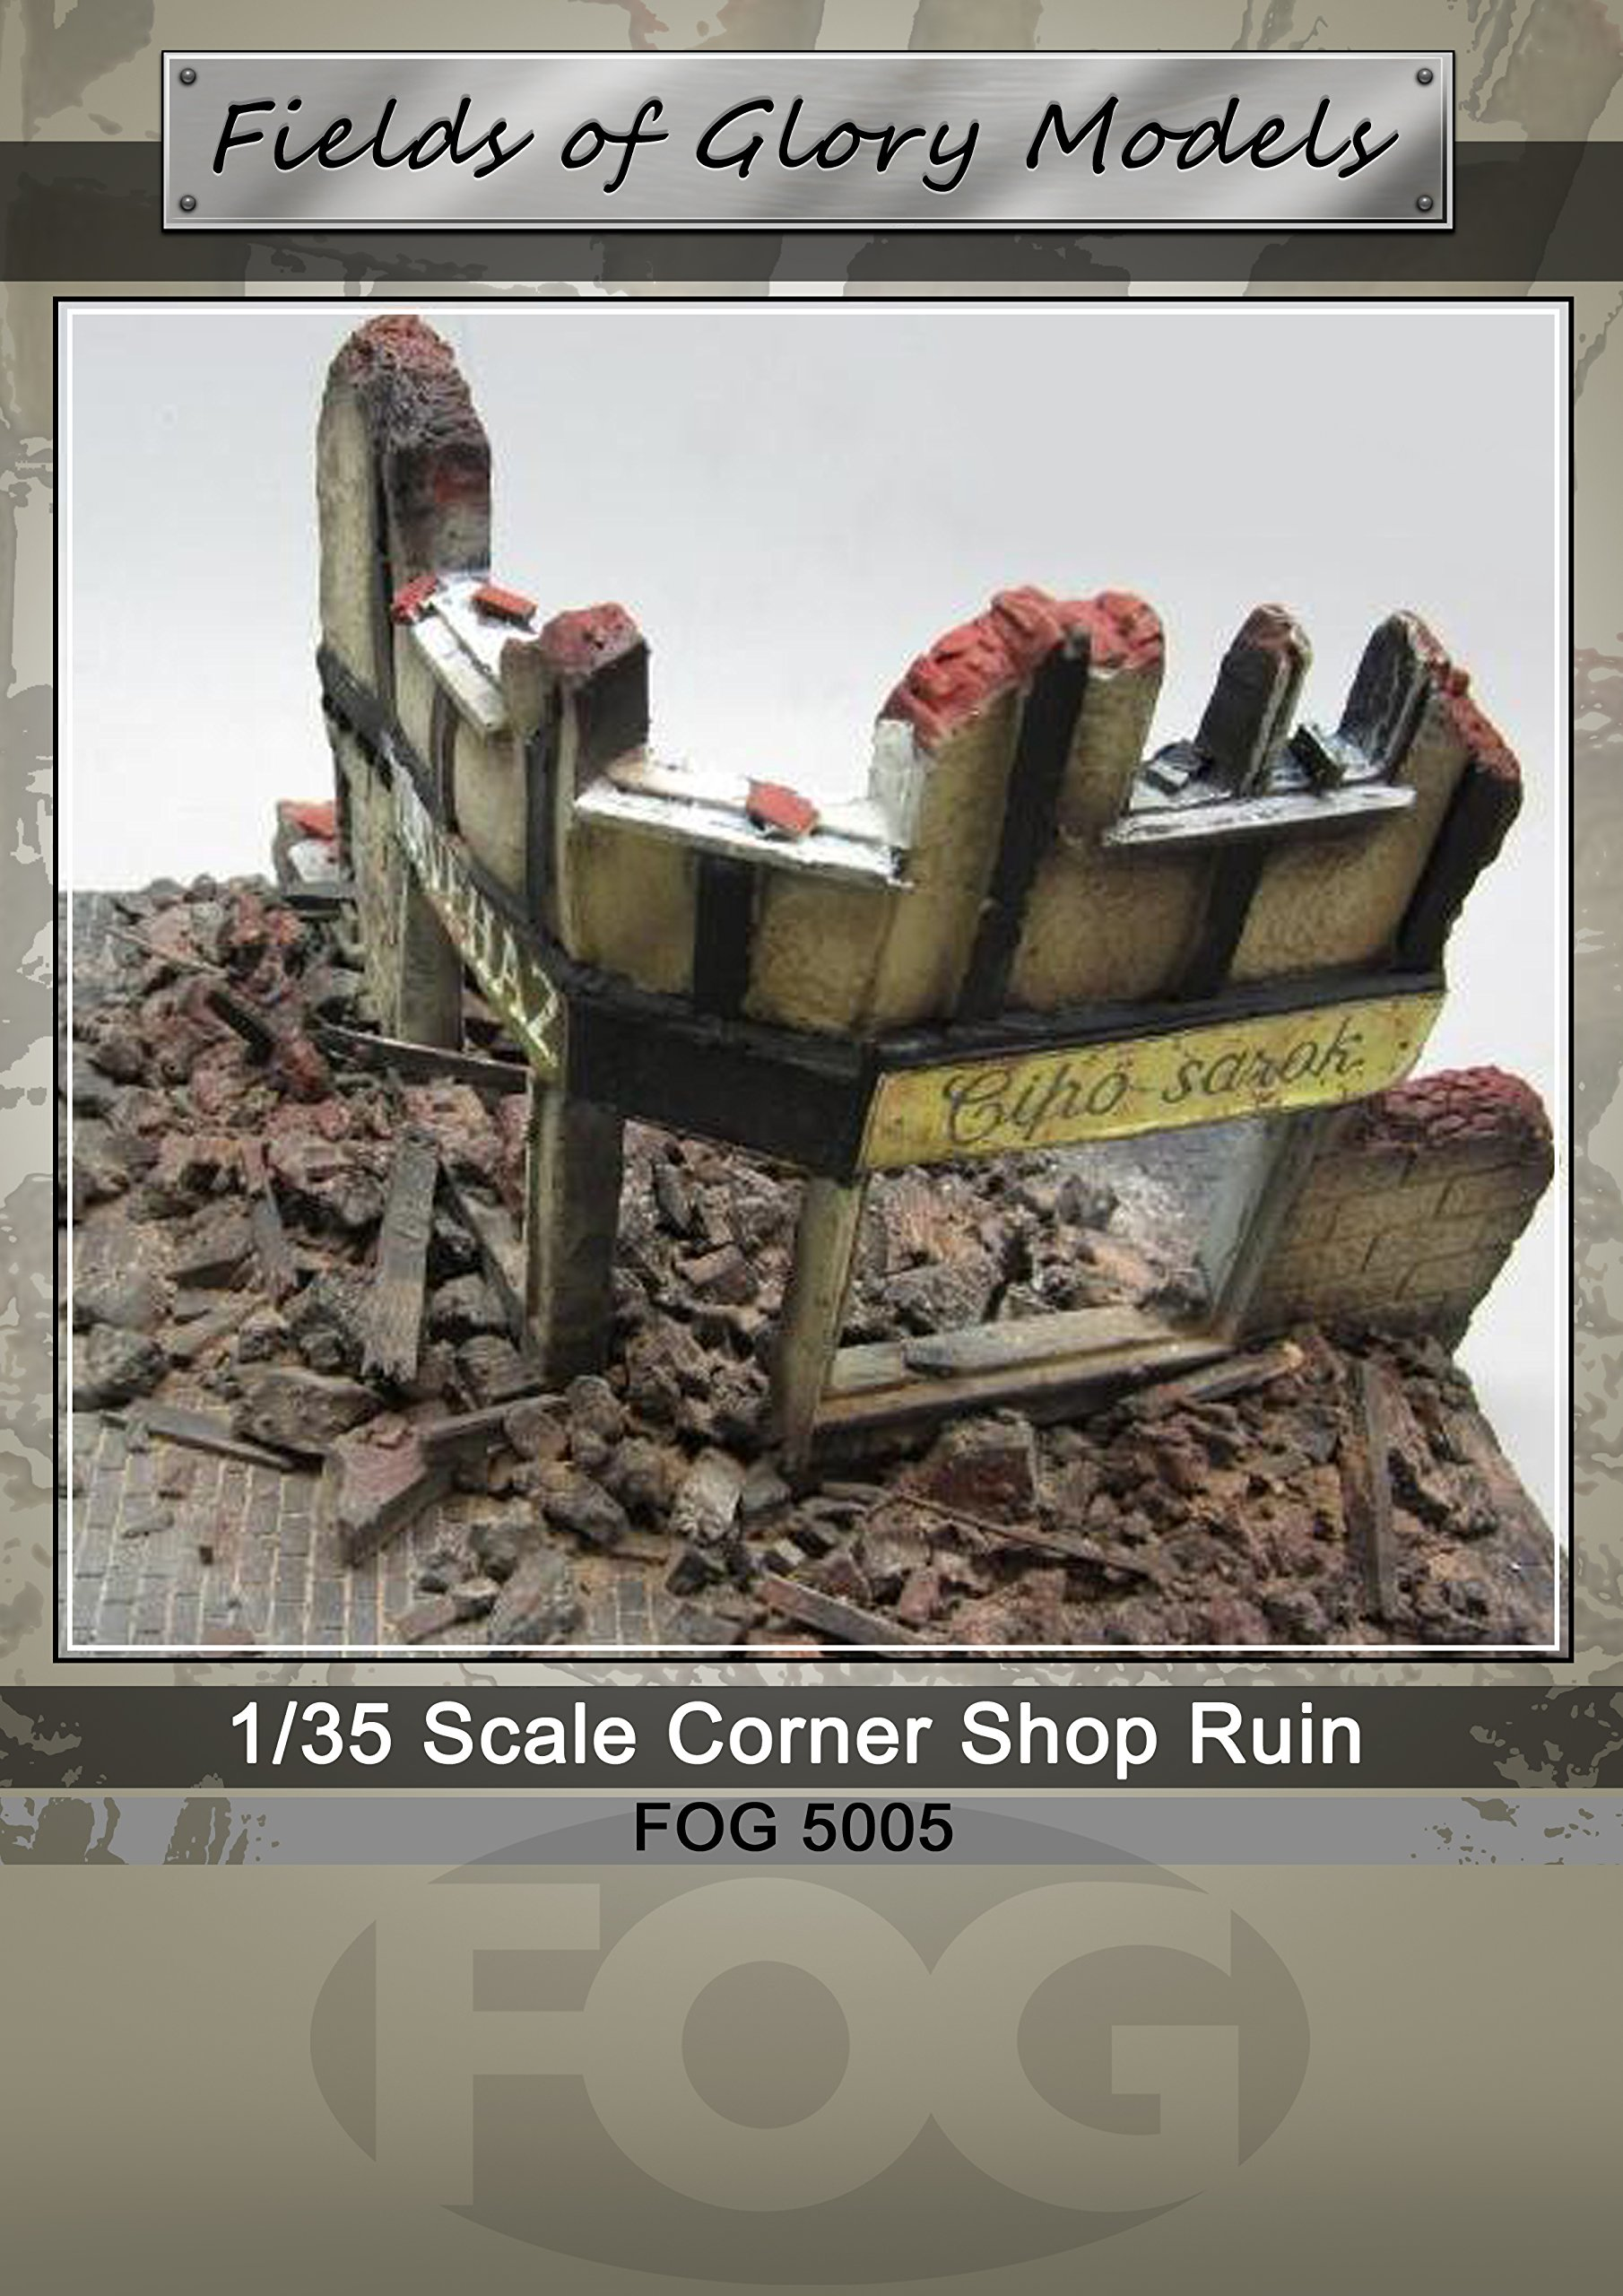 1/35 Scale - WW2 Ruined Shop Front Diorama - Military model kit … by FoG Models (Image #1)